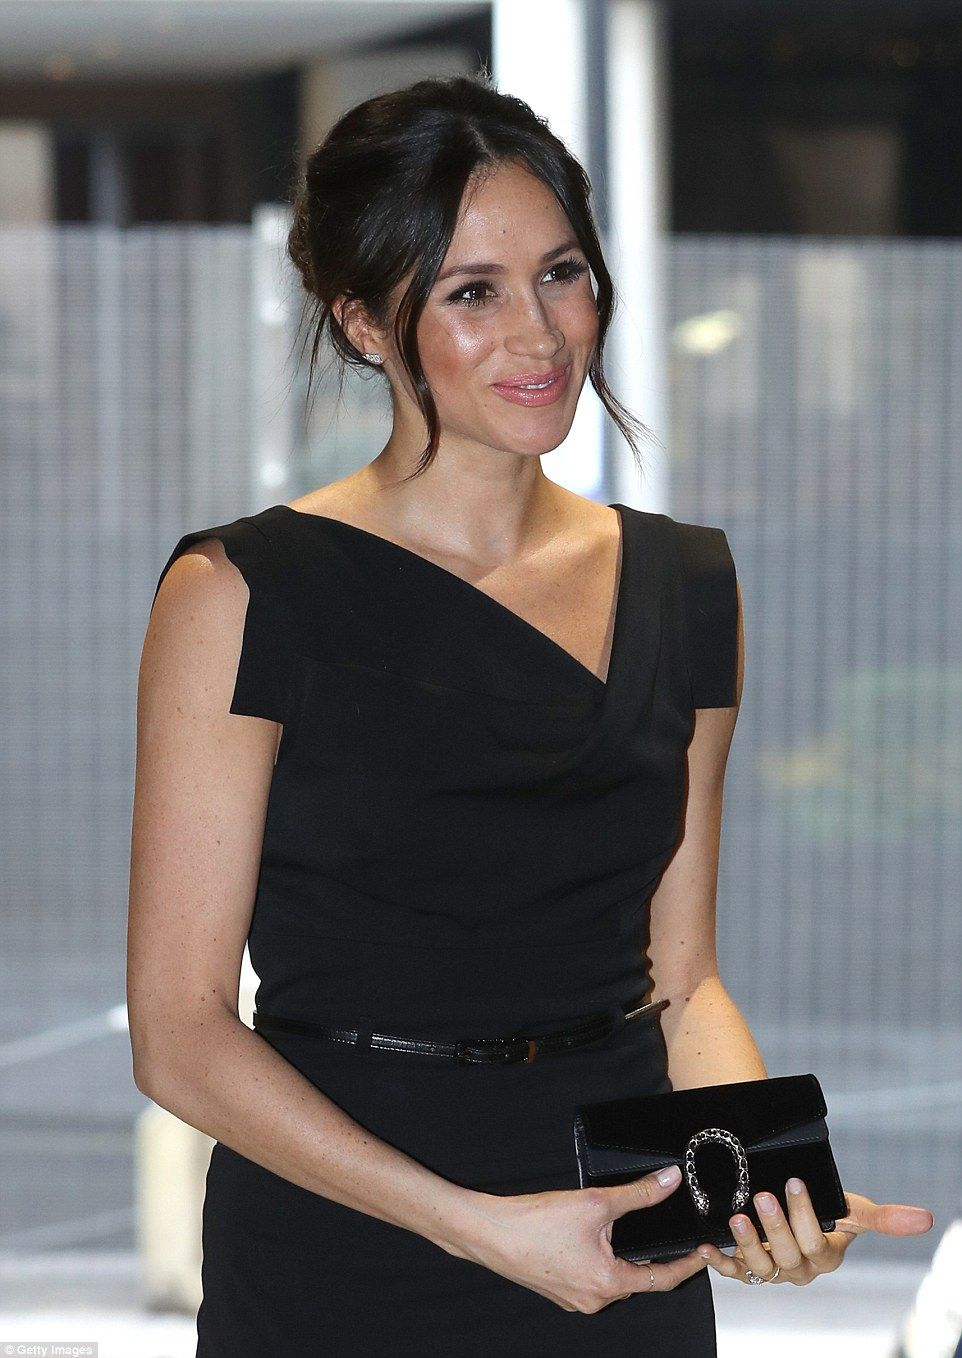 see through Sideboobs Meghan Markle naked photo 2017